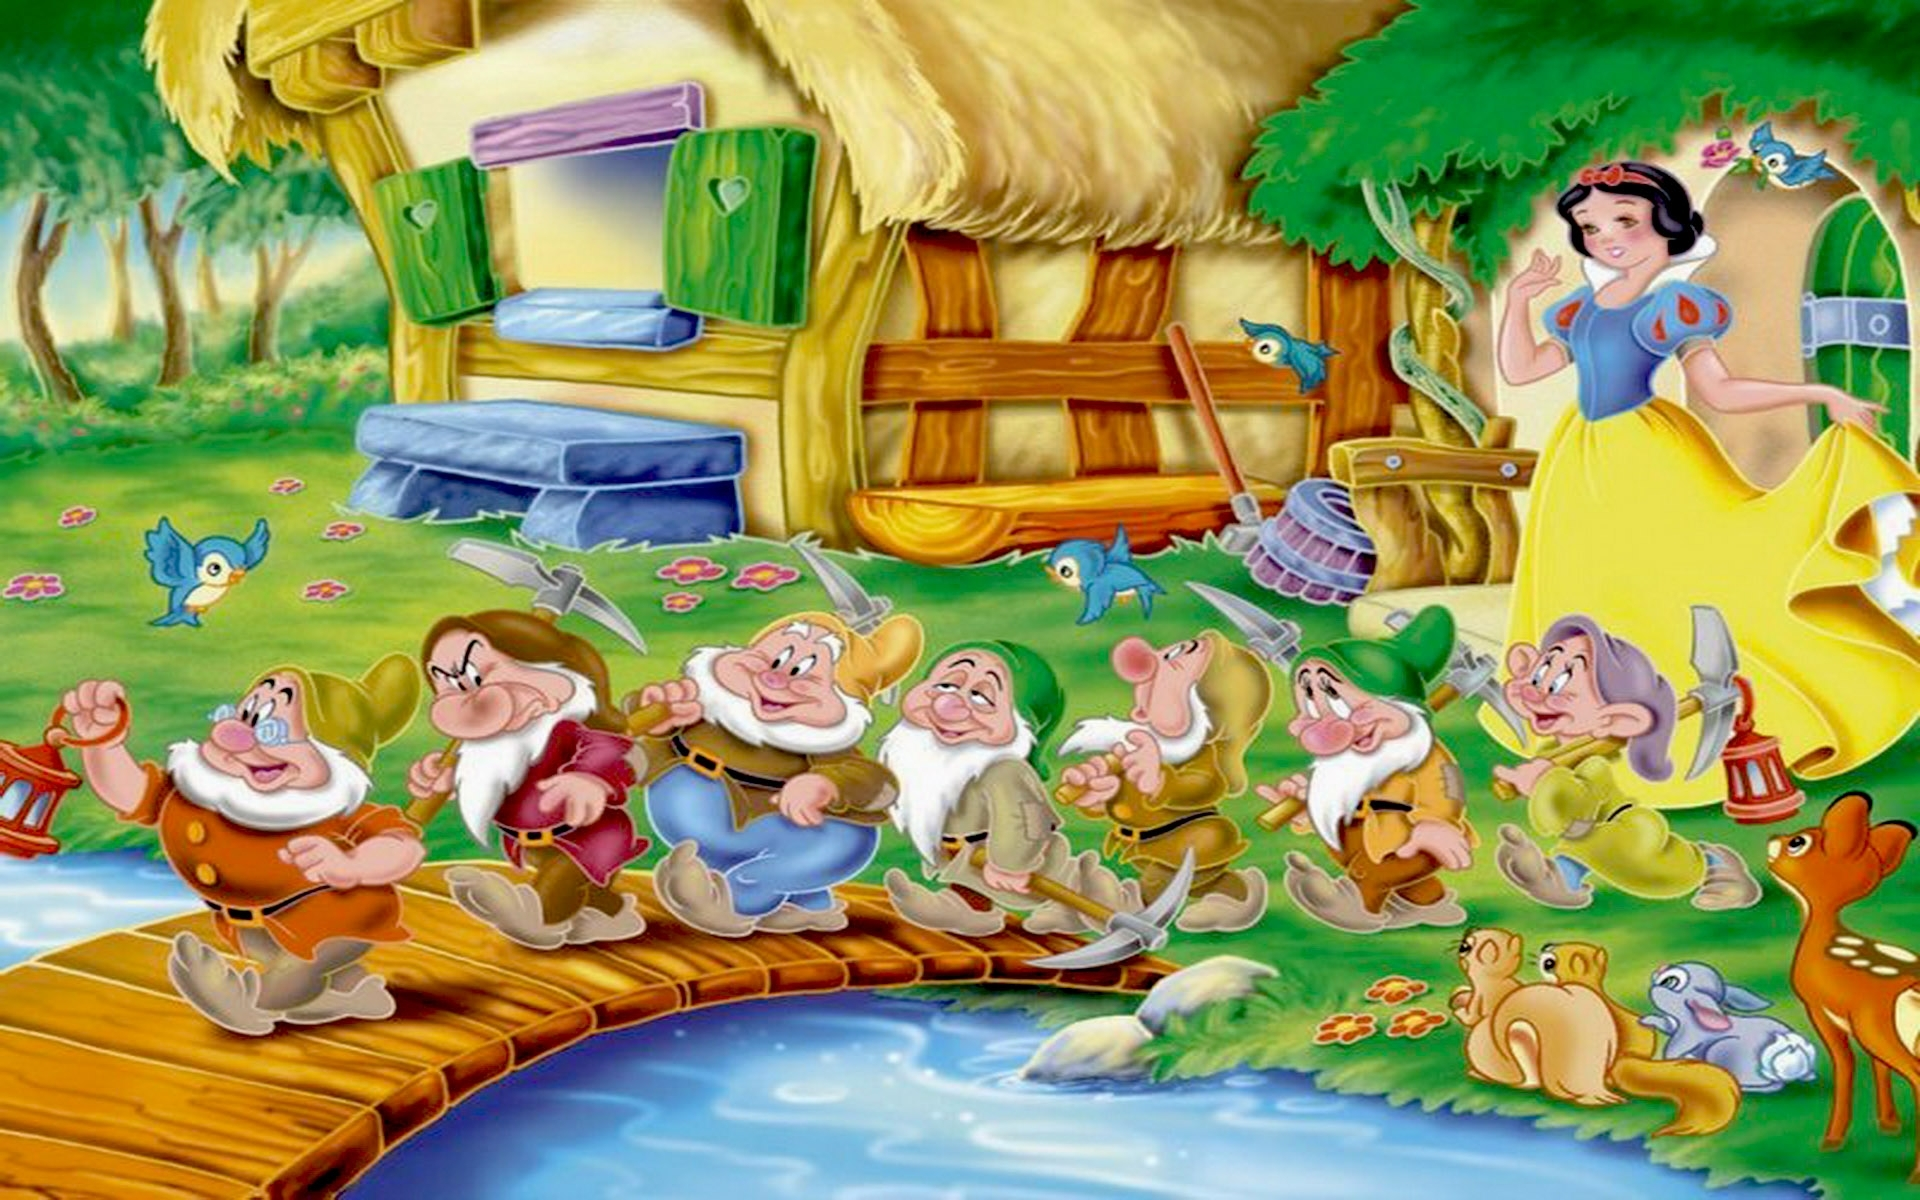 snow white and the seven dwarfs wallpapers : wallpapers13